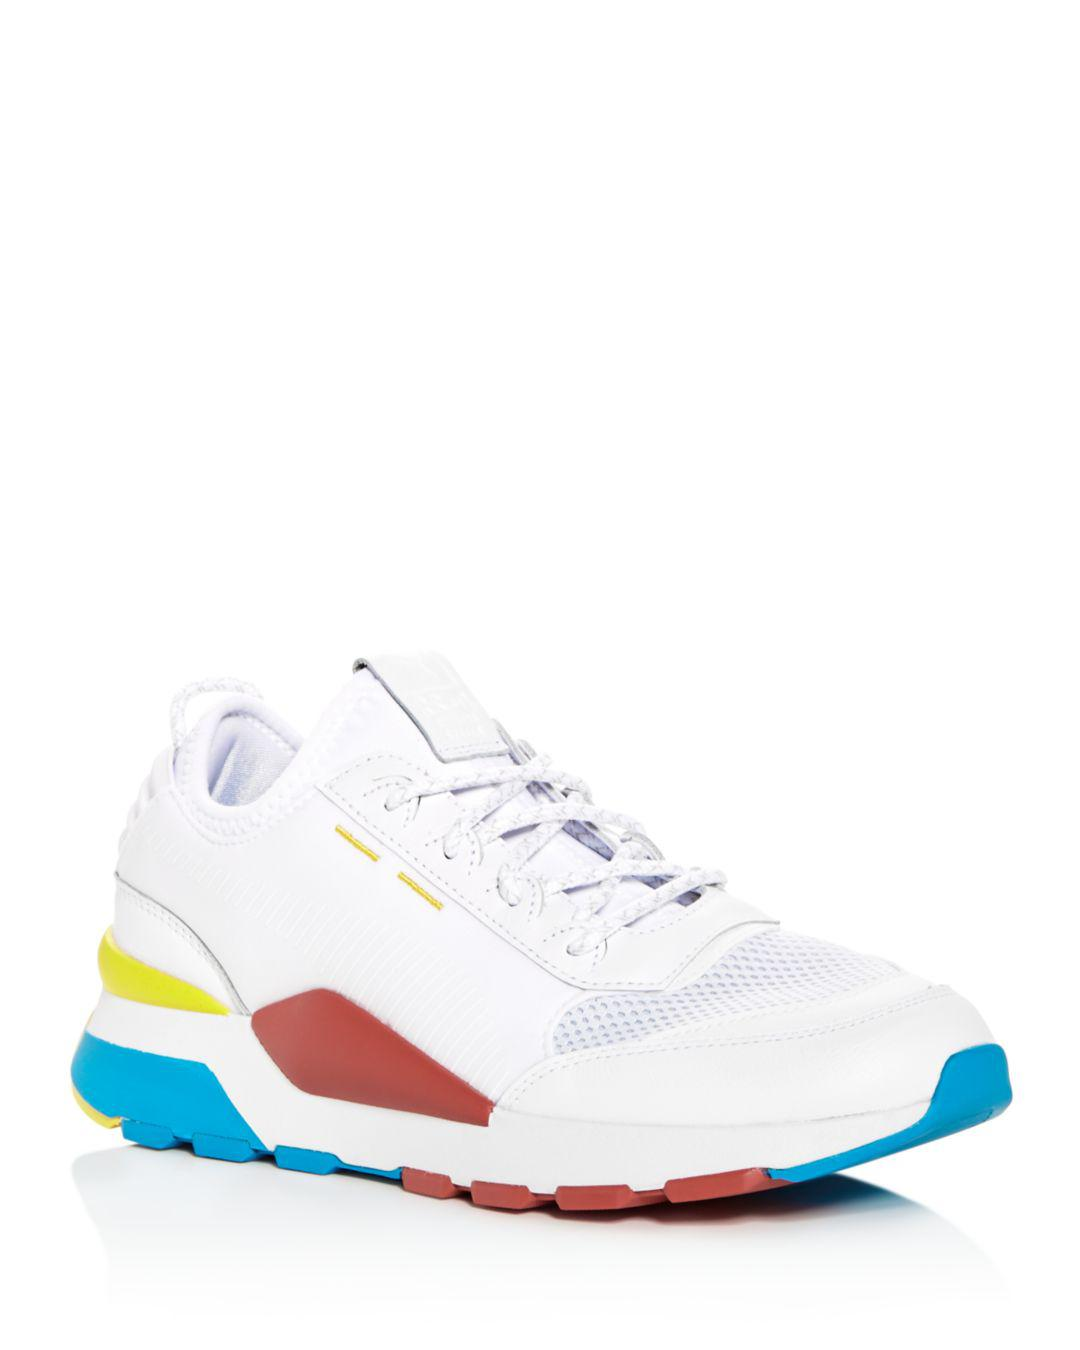 Lyst - PUMA Men s Rs-0 Play Running Sneakers in White for Men 0d8a39f14